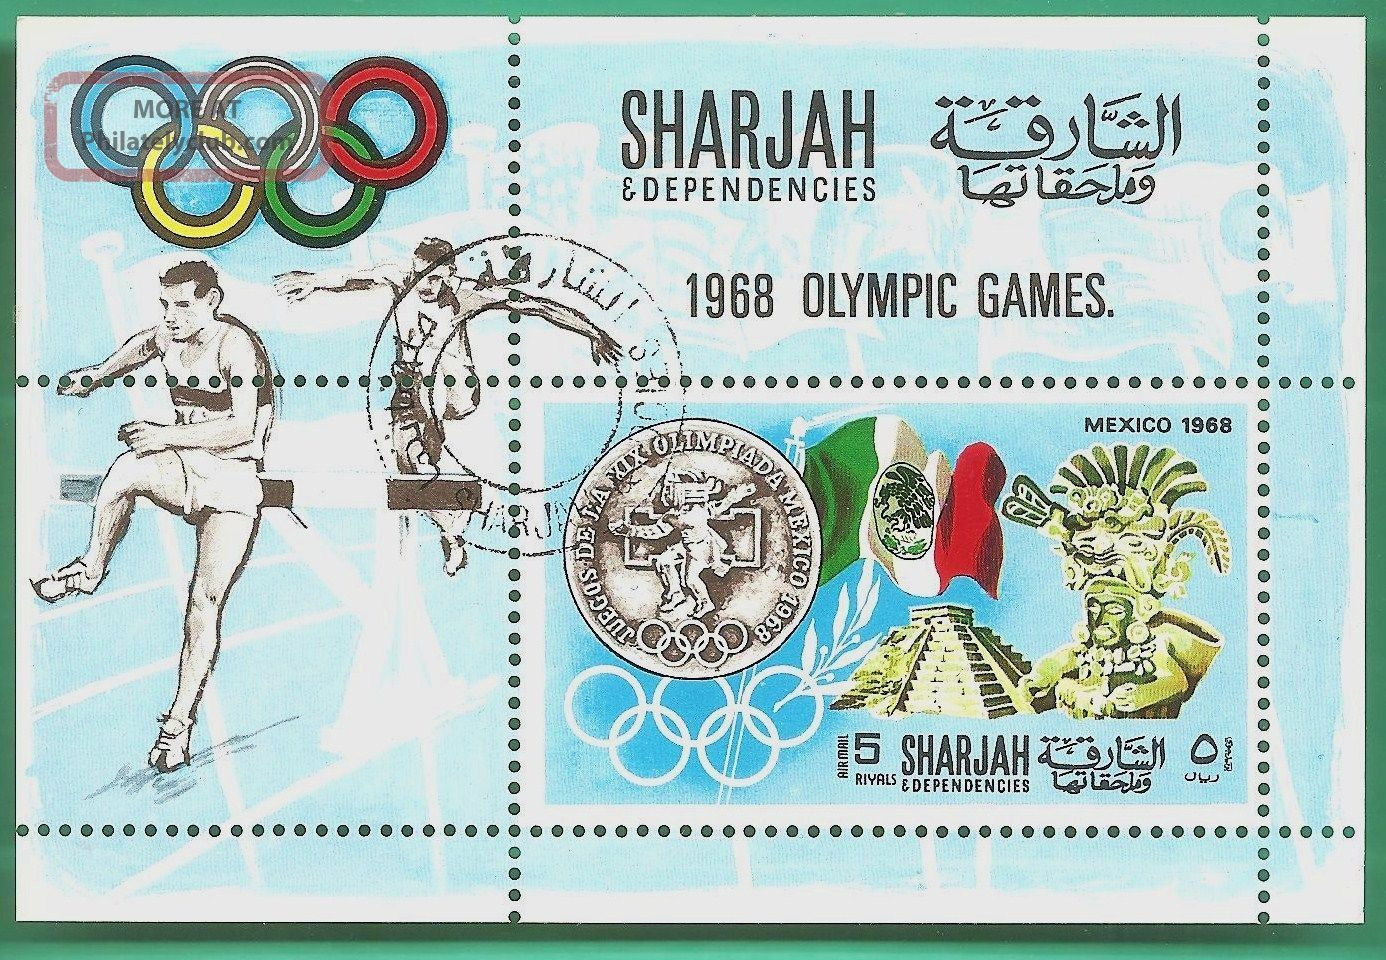 Sharjah: Michel 41a - 1968 Mexico Olympics (5 R - Souvenir Sheet) - (cto) Middle East photo